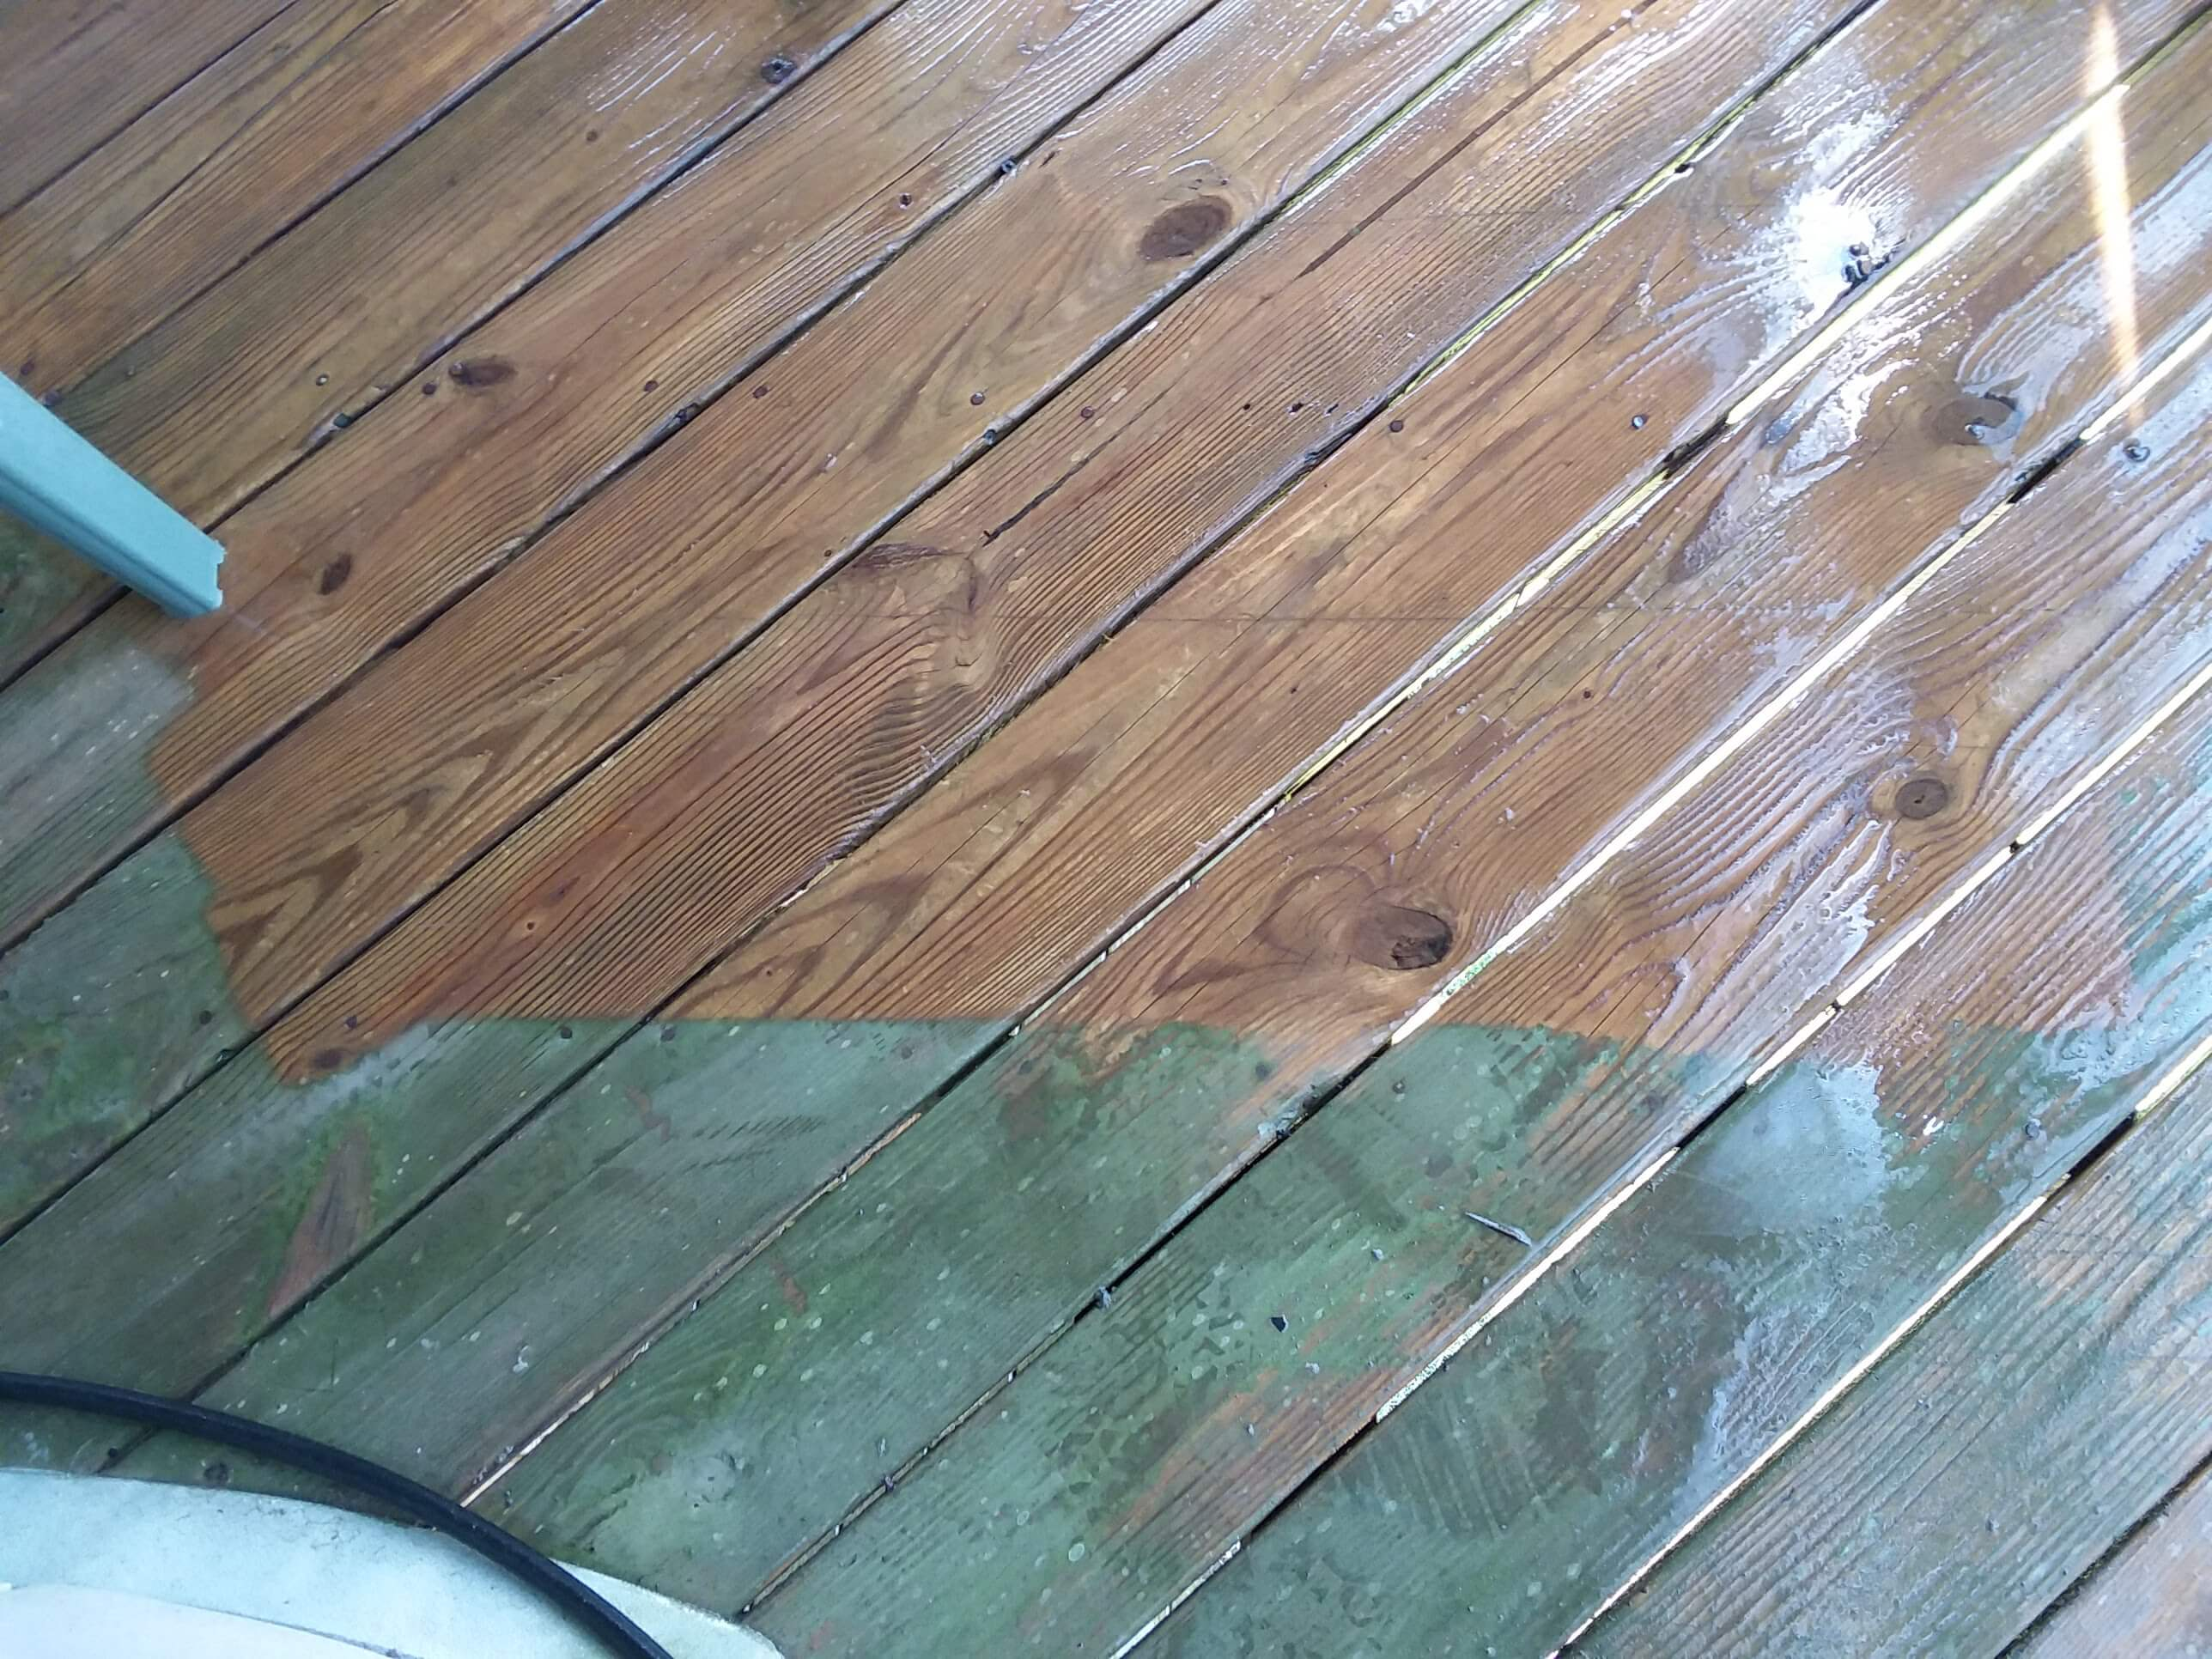 Carolina Pro Clean pressure washed deck 6